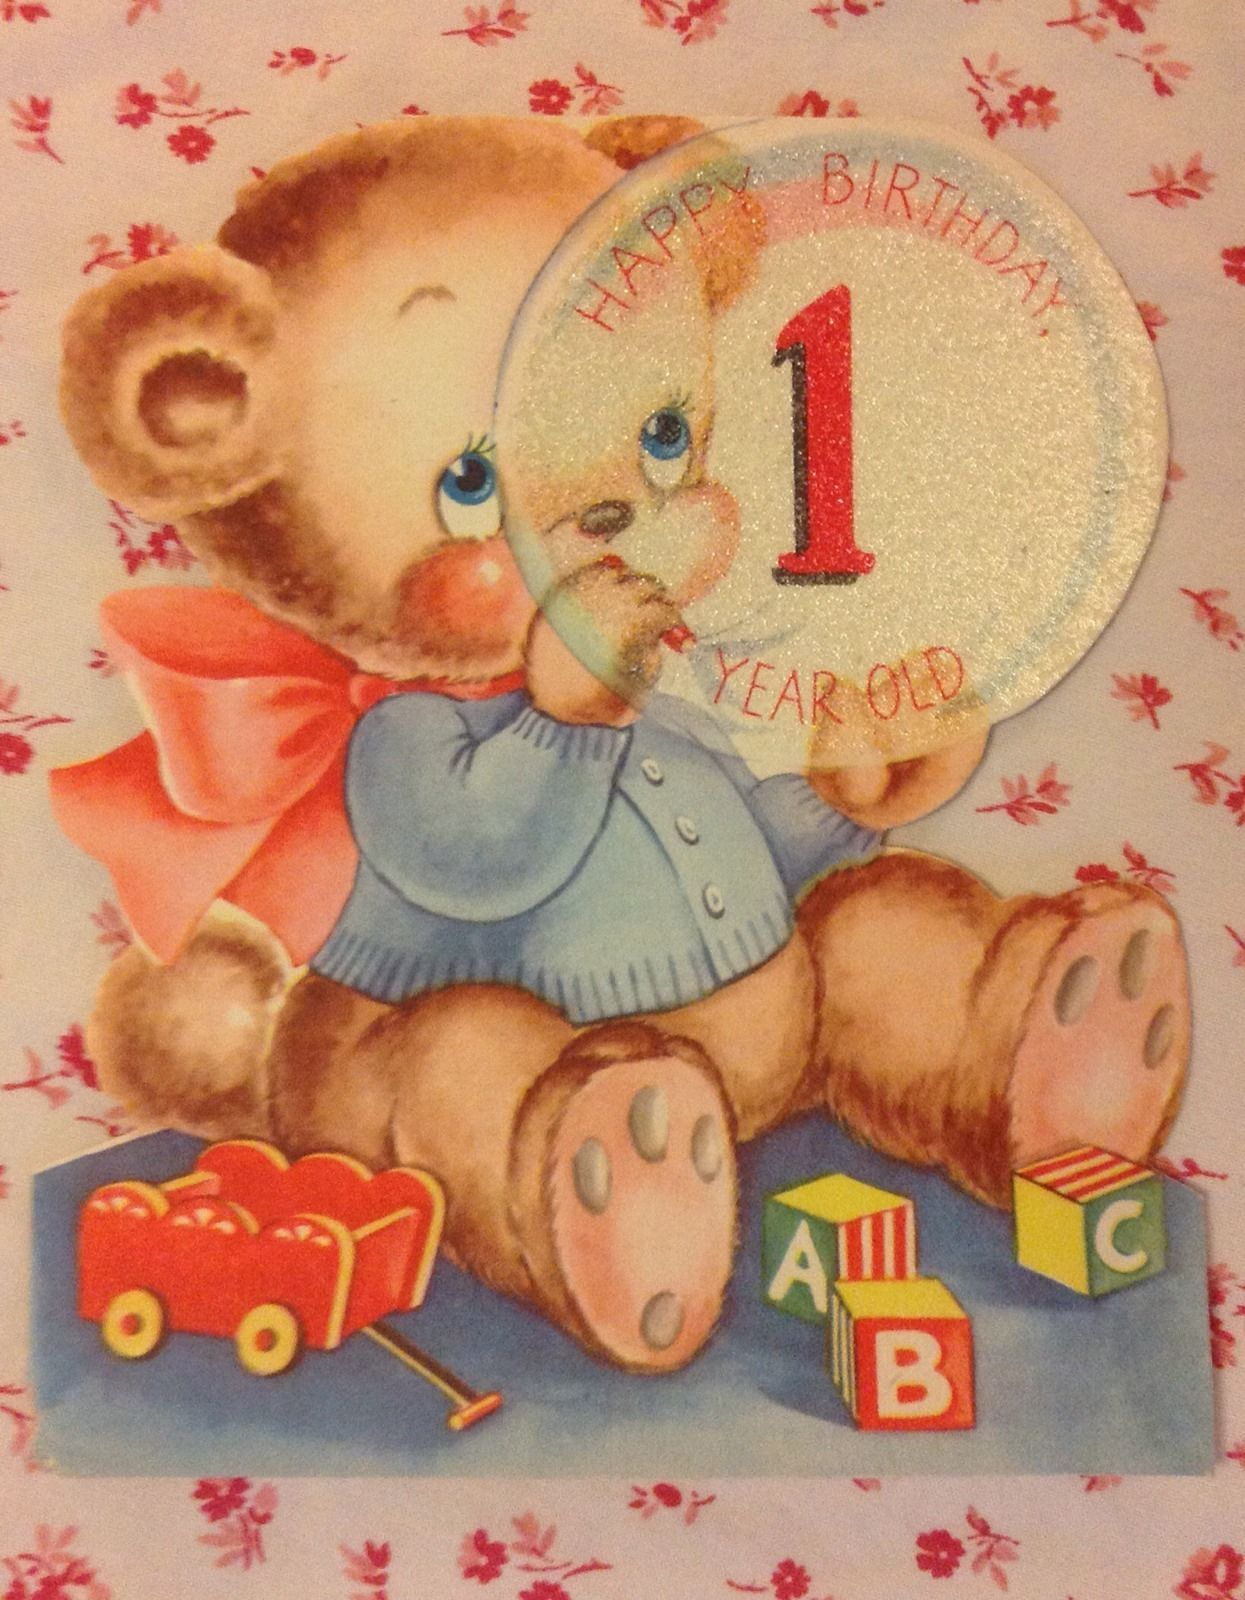 Vintage 1940s Birthday Card For 1 Year Old W Teddy Bear Blowing Bubbles